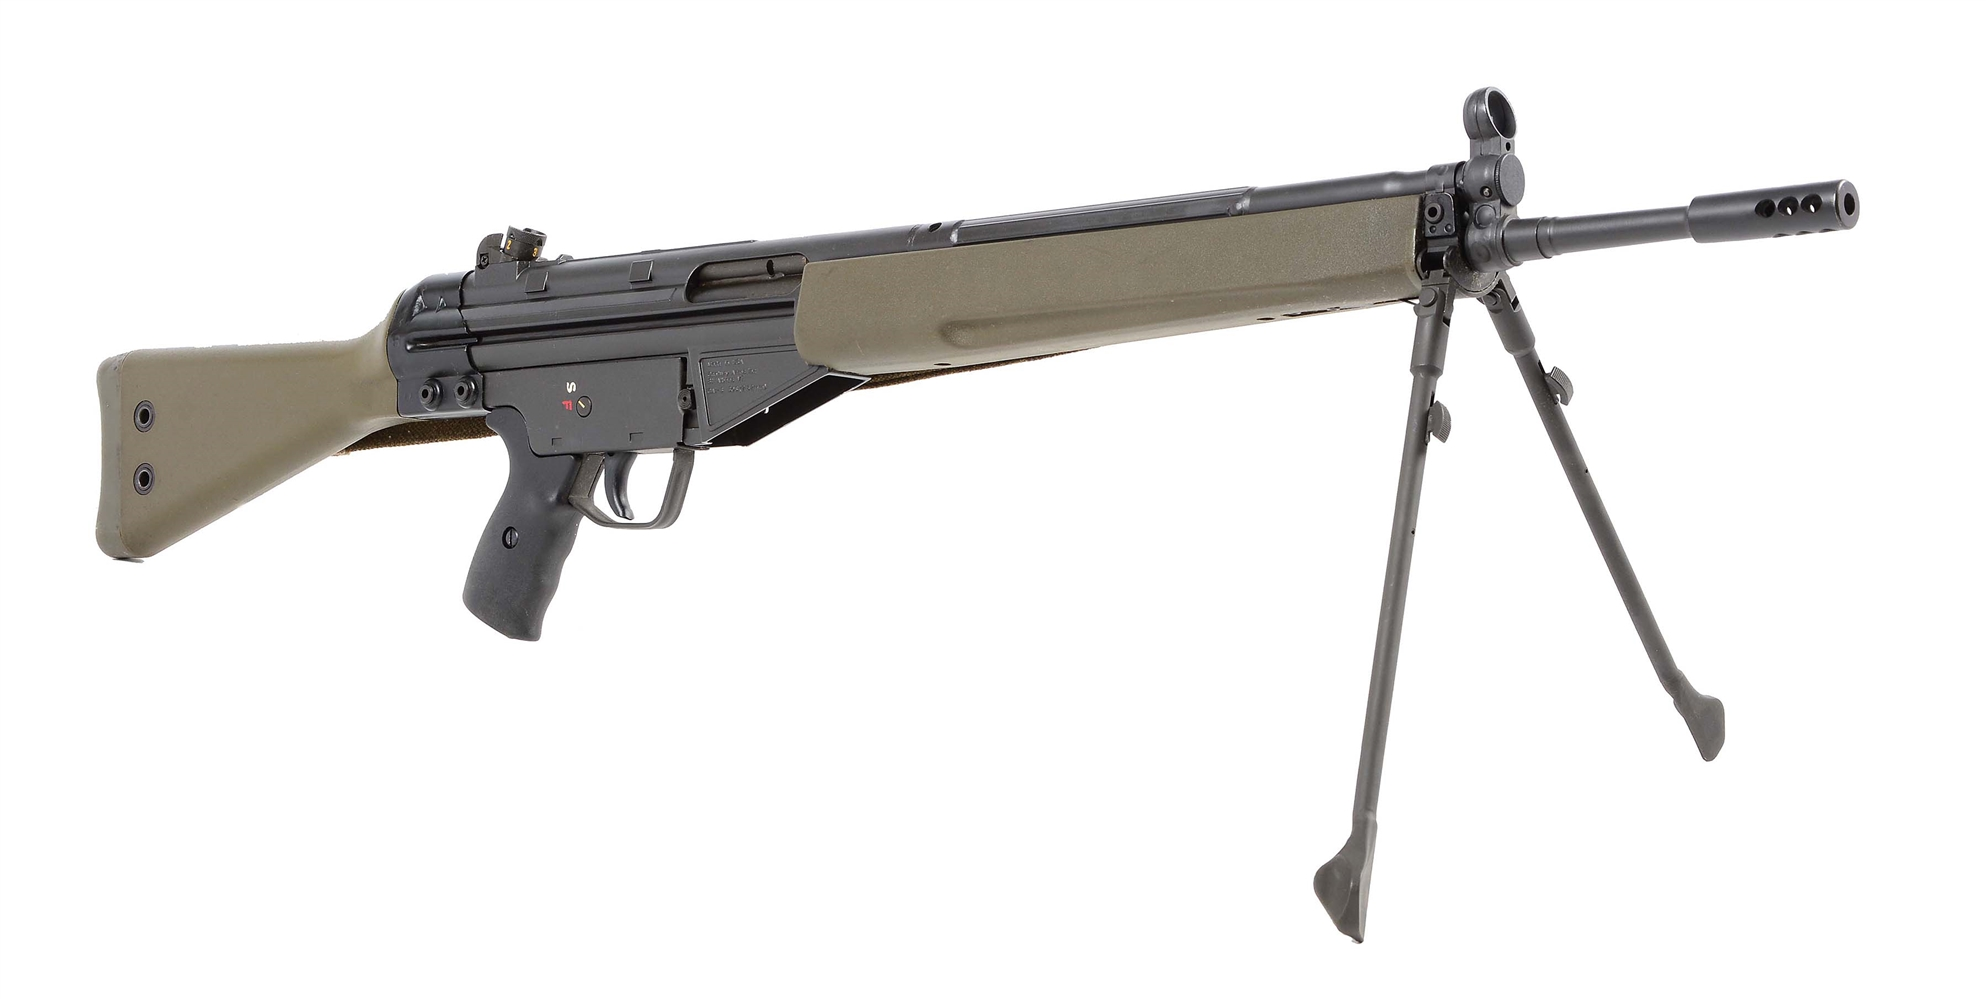 (M) Century Arms CAI-3 Semi-Automatic .308 Rifle